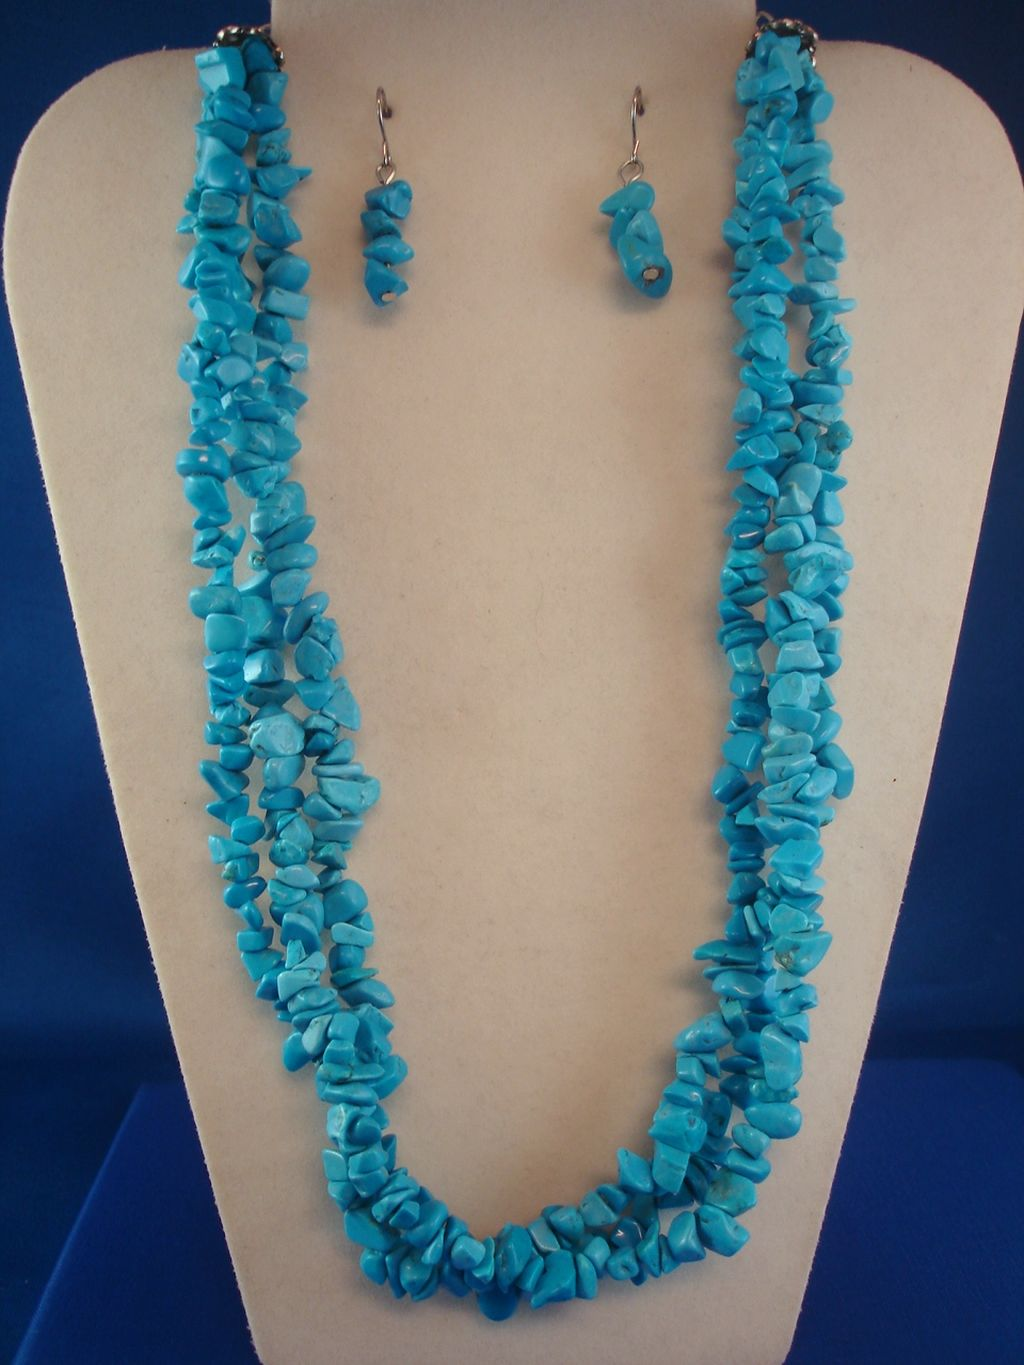 Turquoise / Sky Blue Tone Set of Necklace & Earrings, Three Strings Genuine Stones, Anti-allergic Jewelry